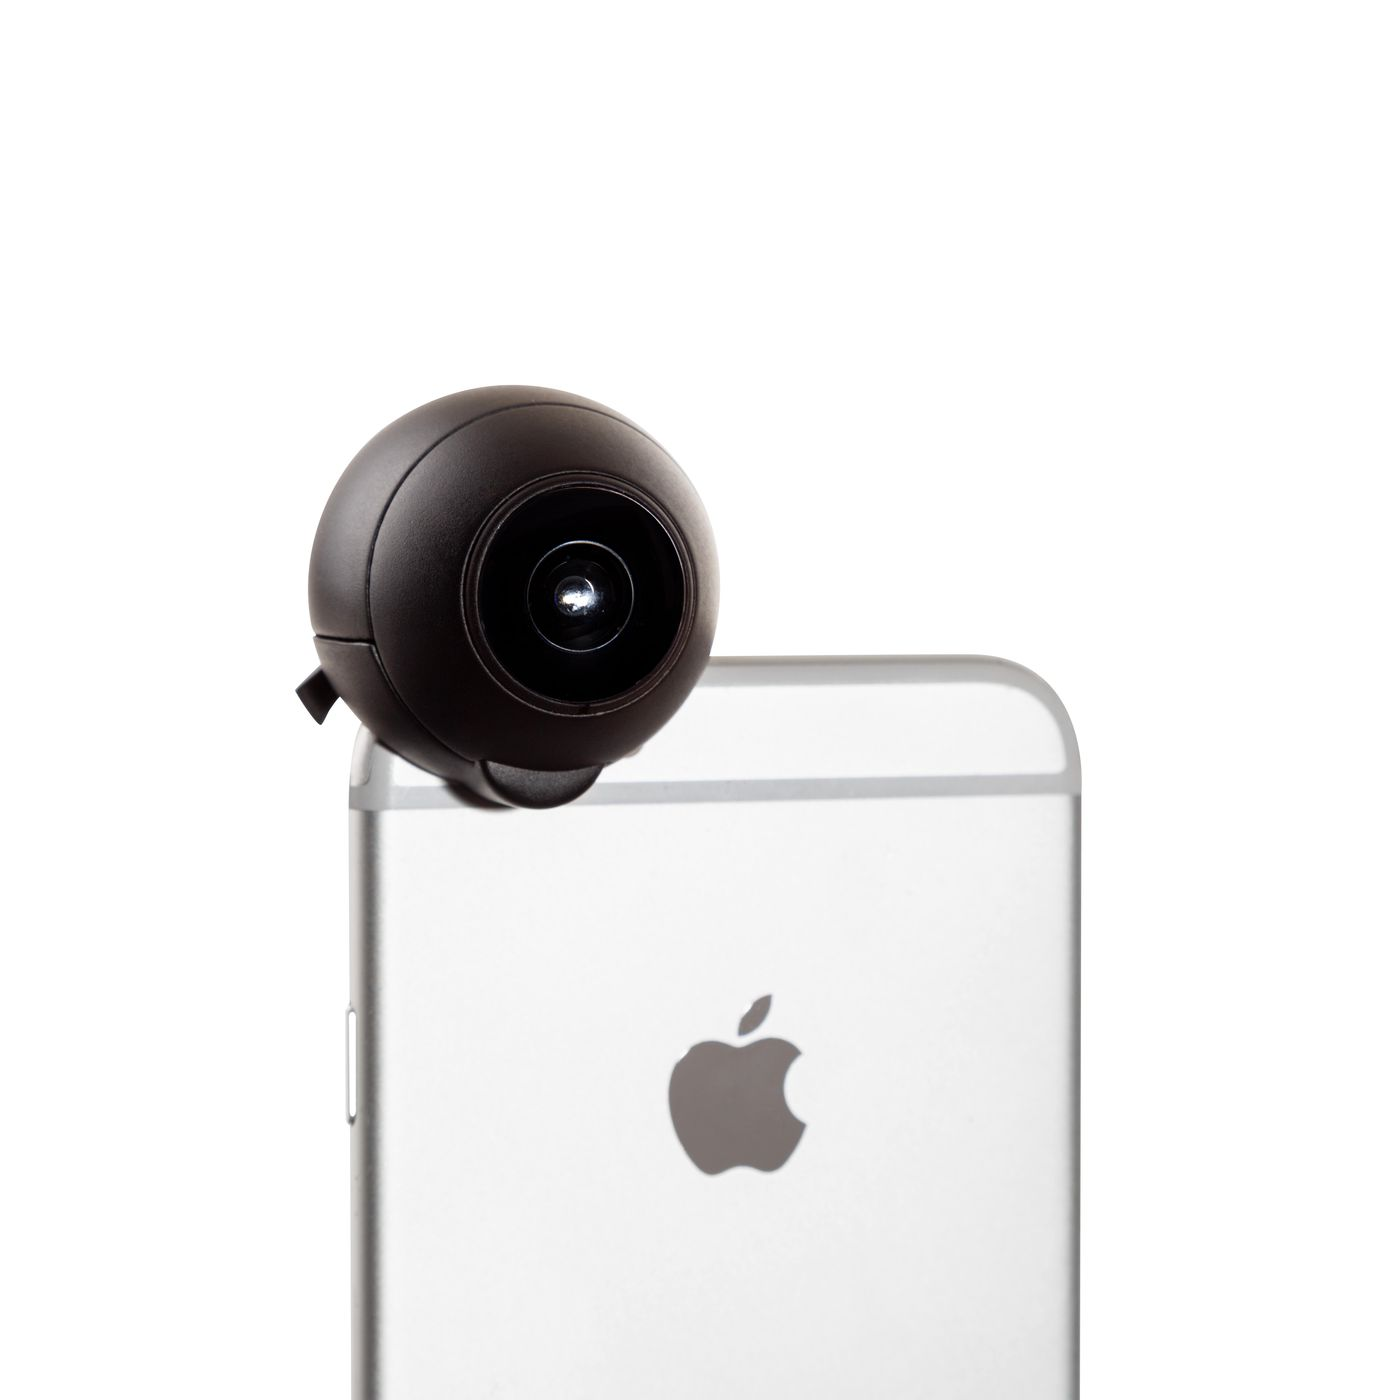 This 360 Degree Lens Attaches To Your Iphone Camera The Verge Throw Ball Take Panoramic Photos